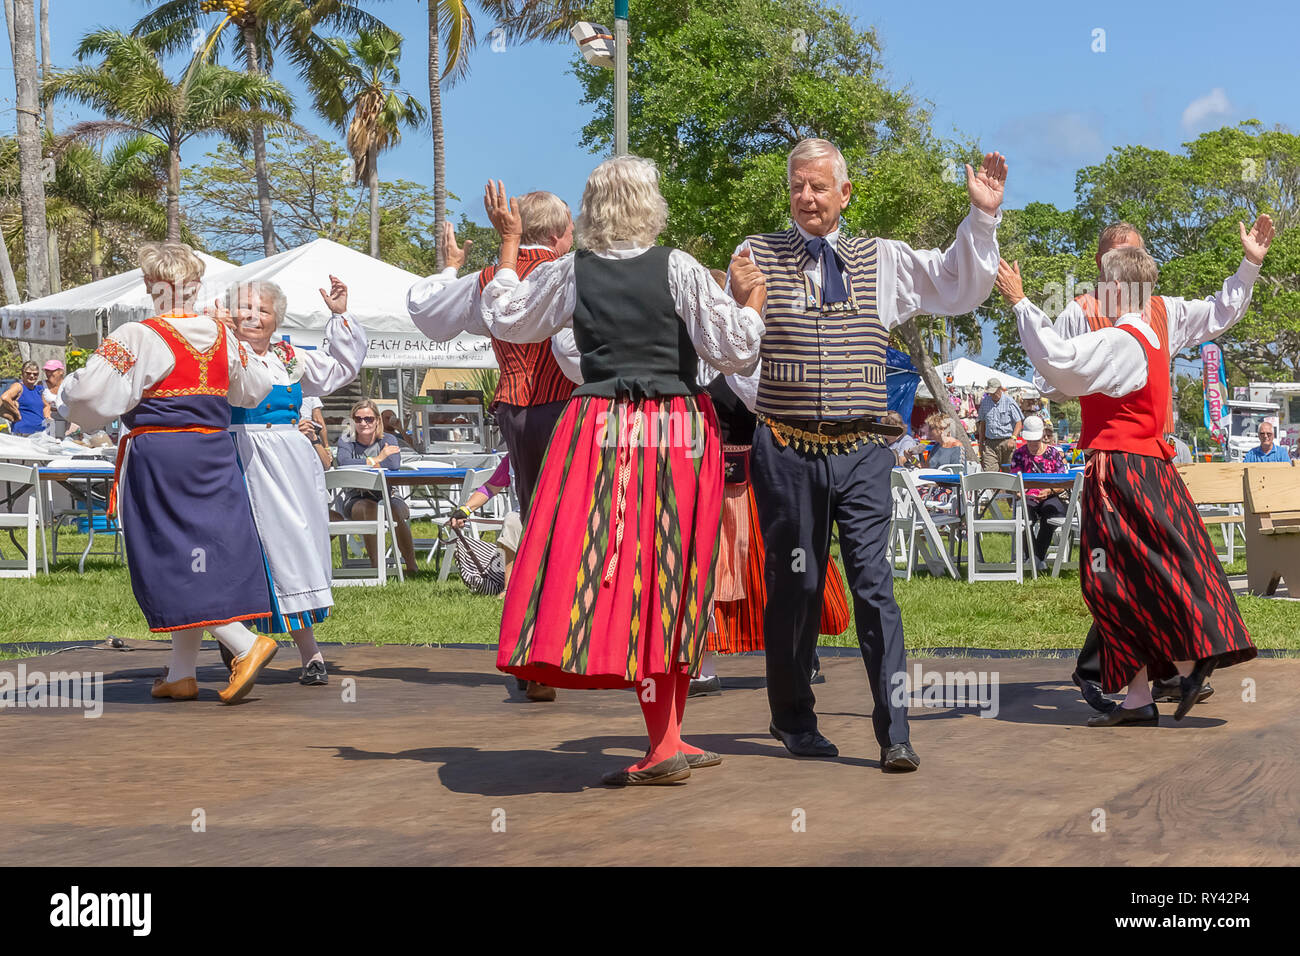 Lake Worth, FL, USA March 3, 2019, Midnight Sun Festival Celebrating Finnish Culture. The couples hold each other's right hand up and left hand up. - Stock Image